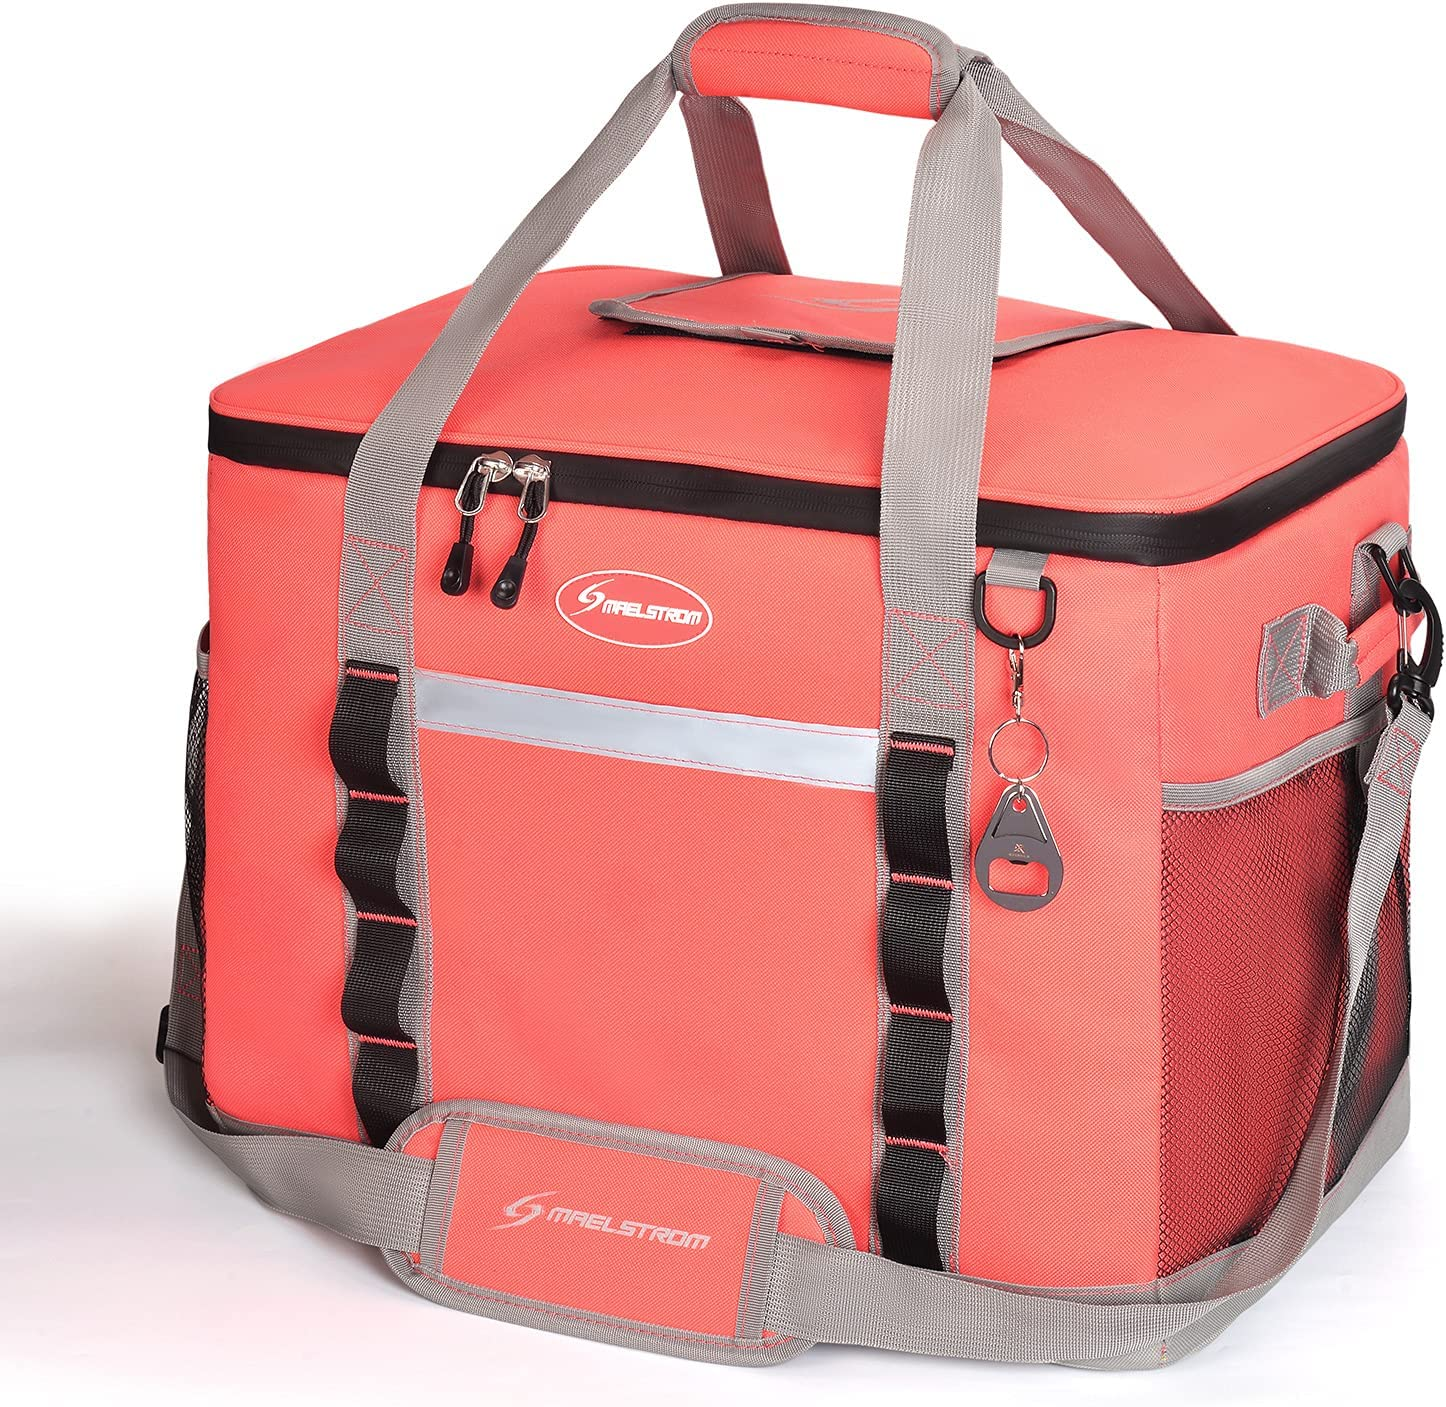 Maelstrom Ice Hollow Collapsible Sided Direct store A surprise price is realized Soft Cooler